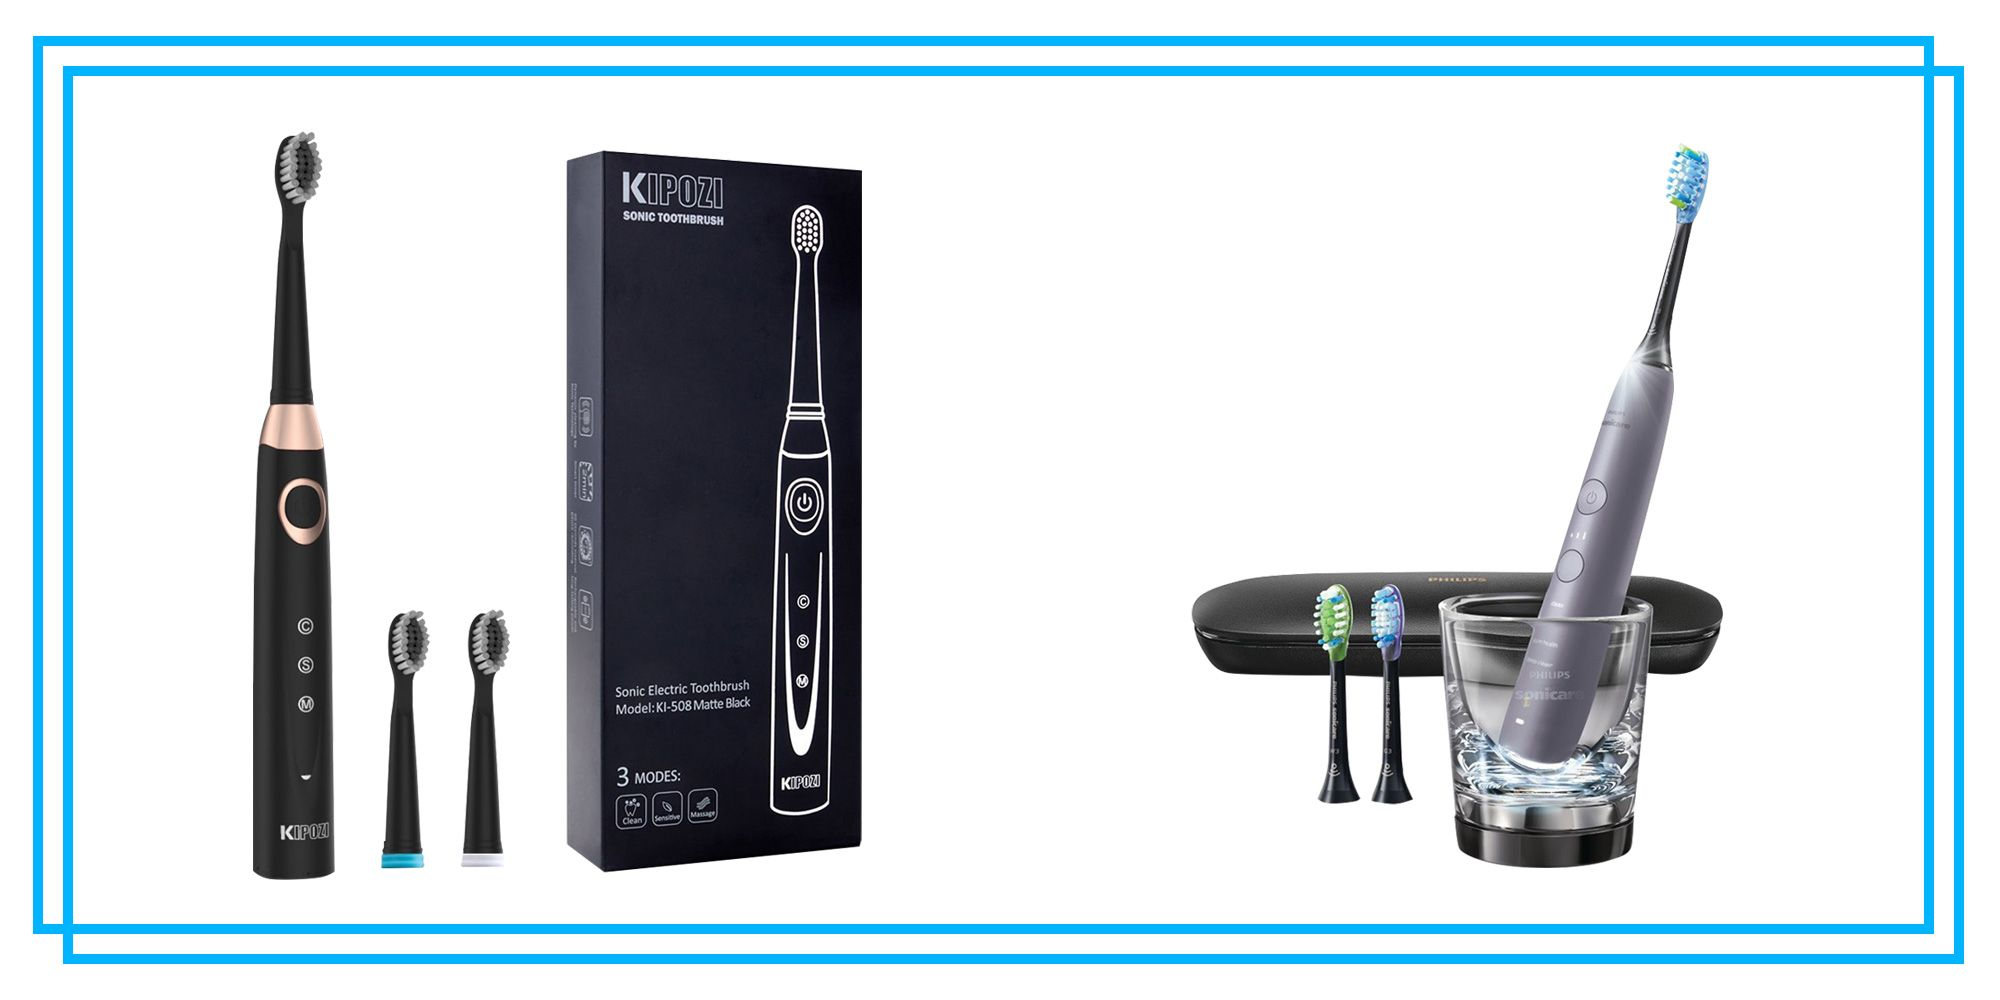 The 5 Best Electric Toothbrushes You Can Buy, According To Amazon Reviews